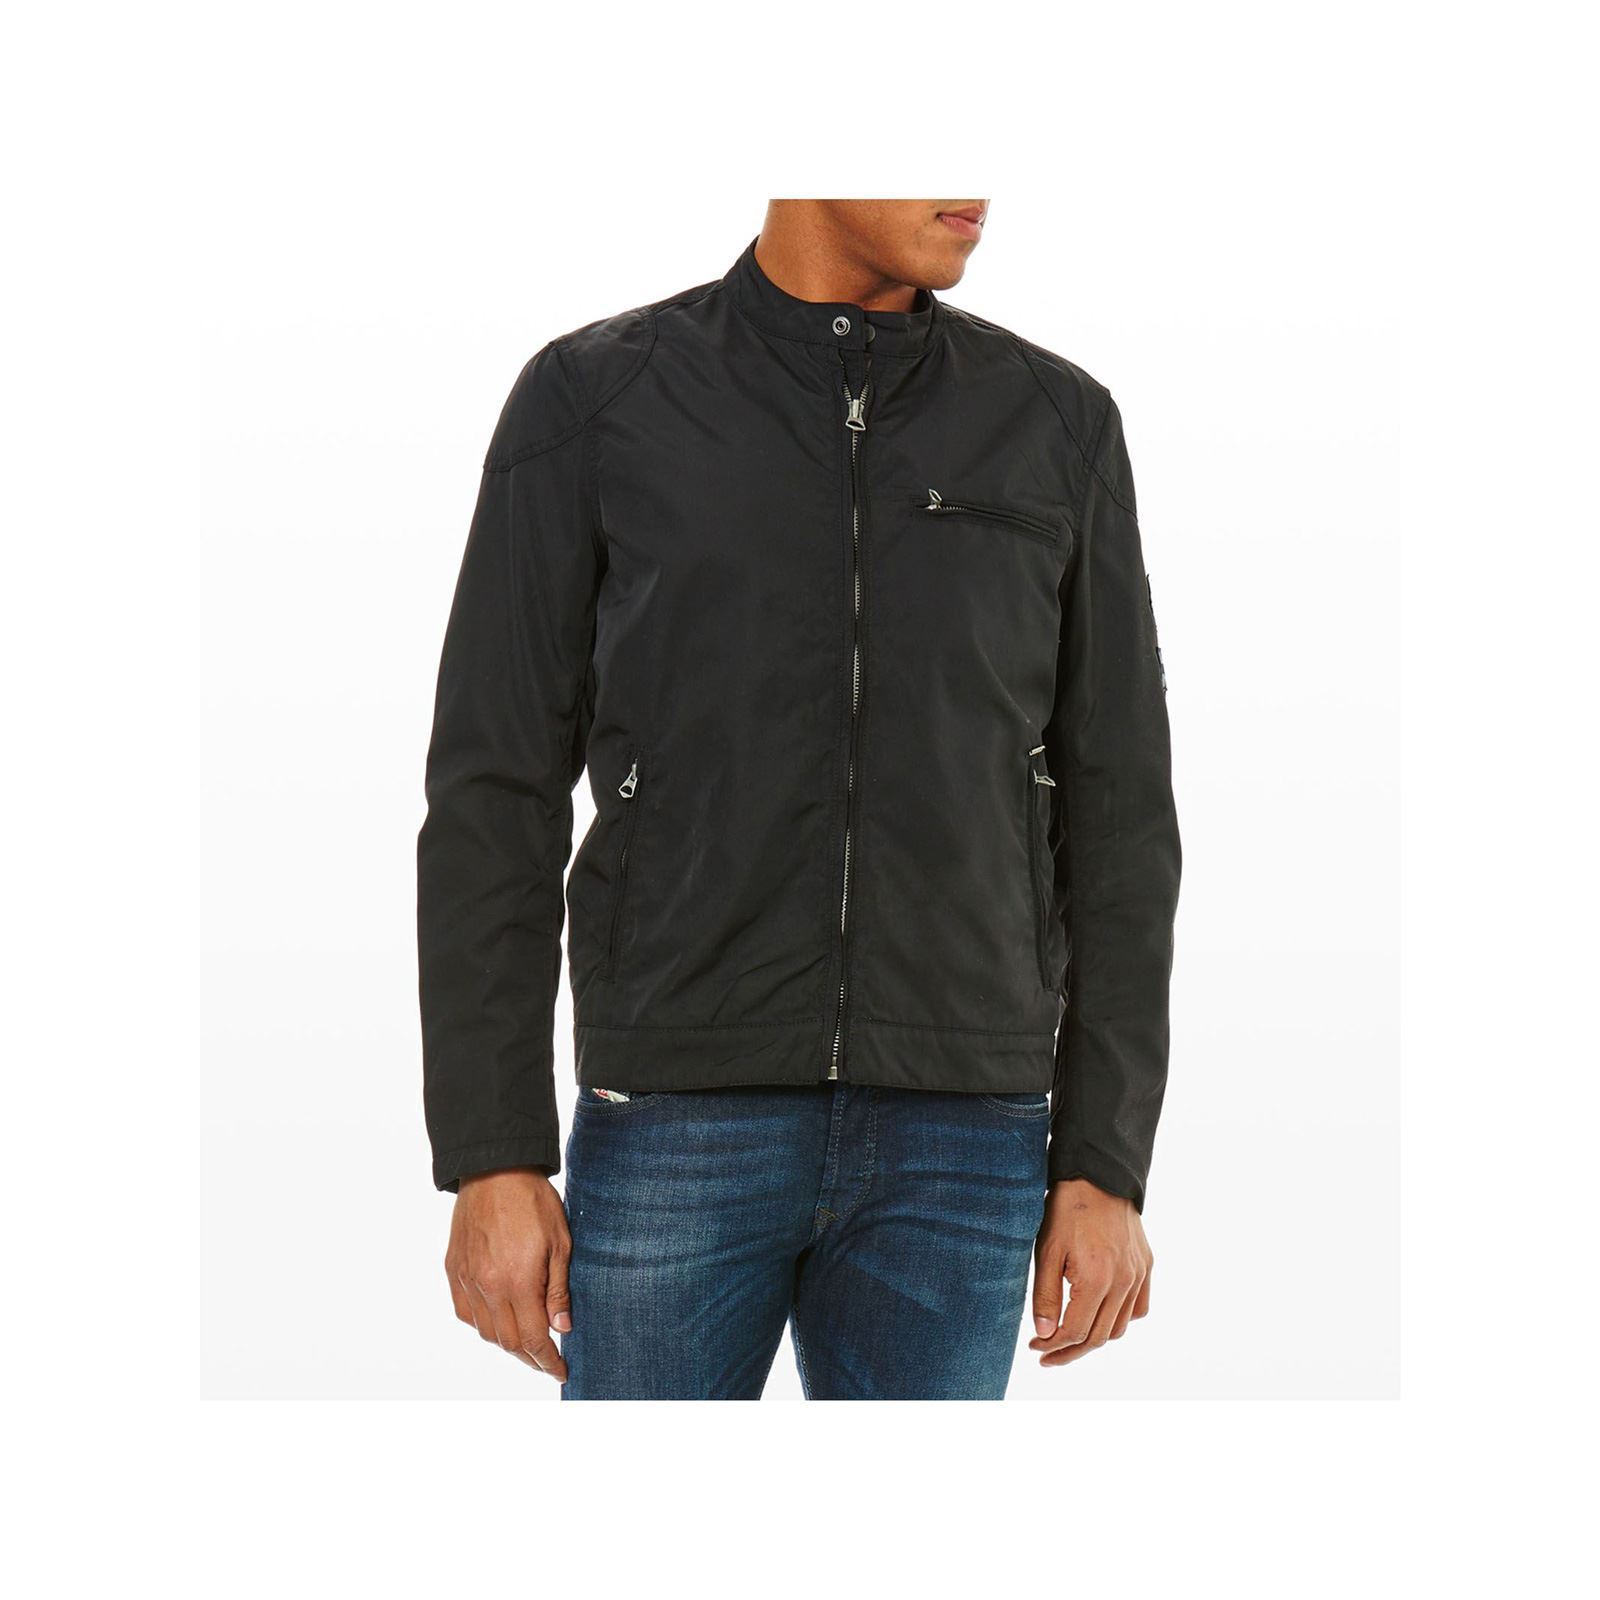 London Veste Pepe Falcon Noir Jeans Brandalley 6ZrPxZ